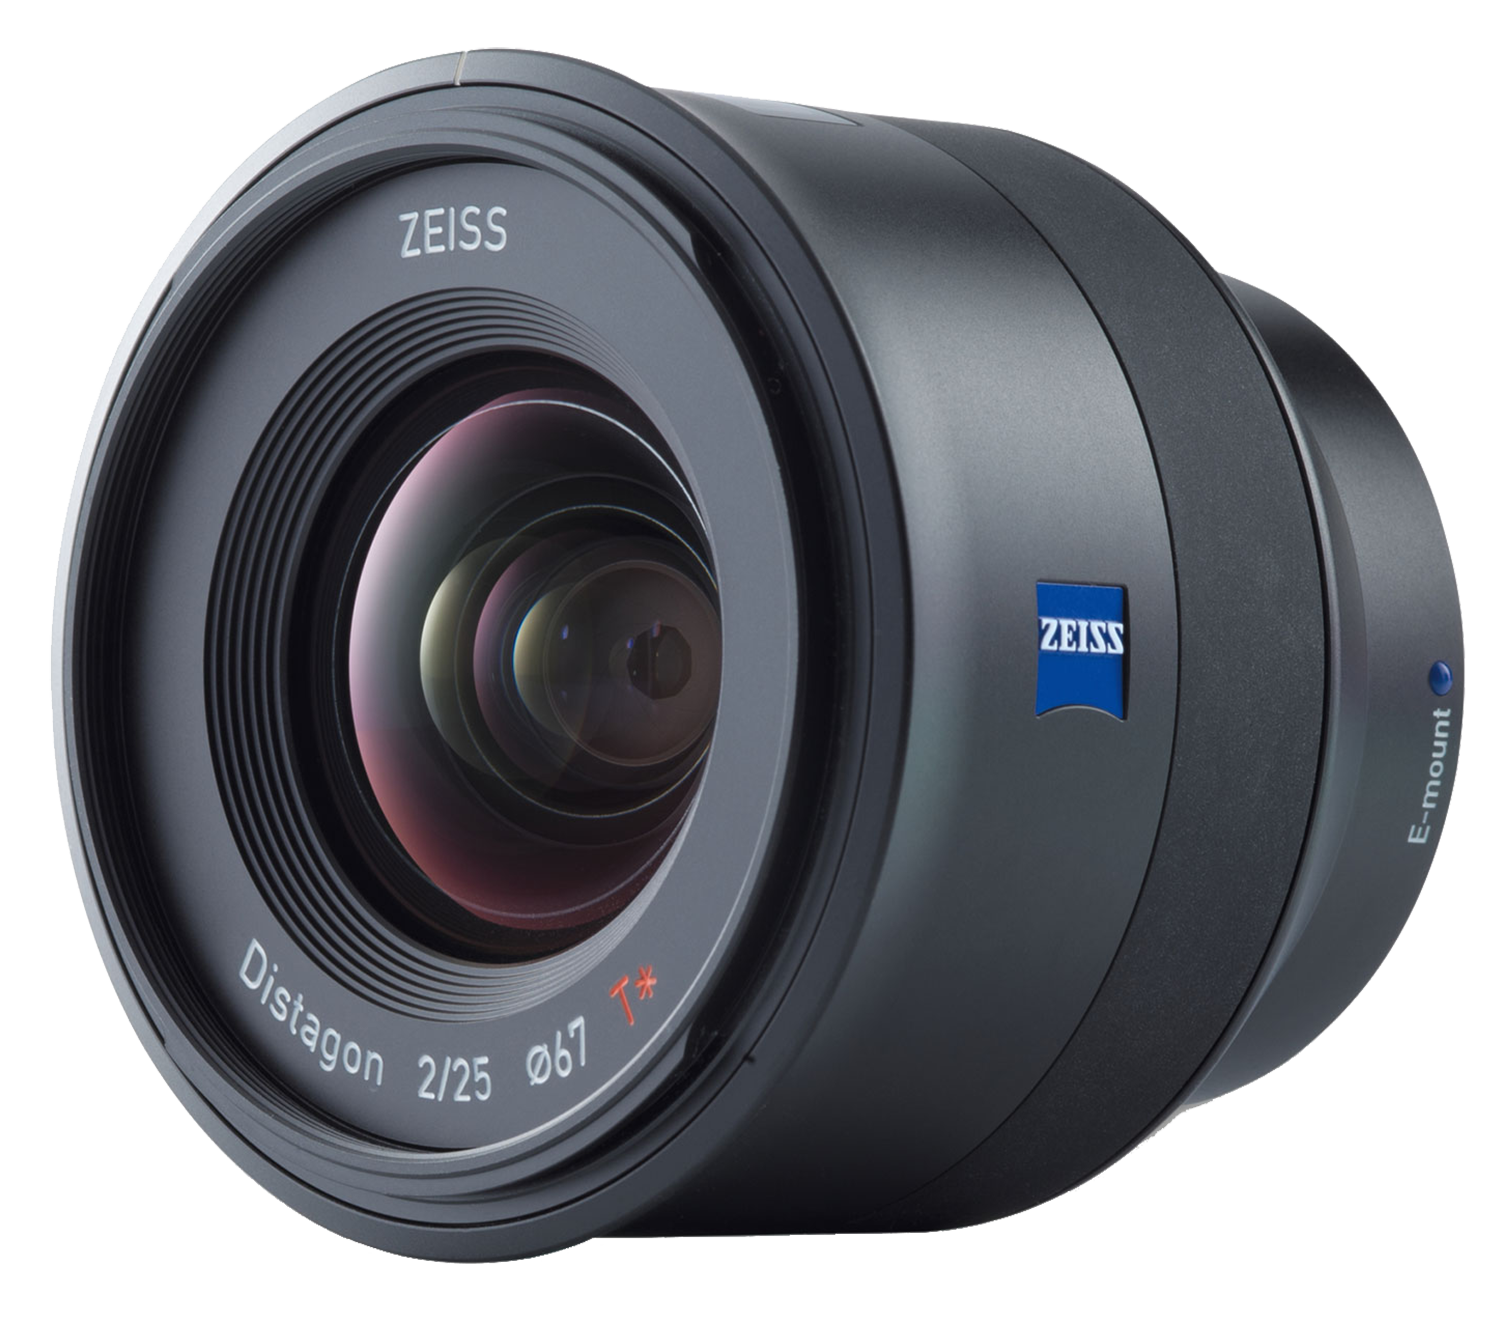 ZEISS Batis lenses for hire